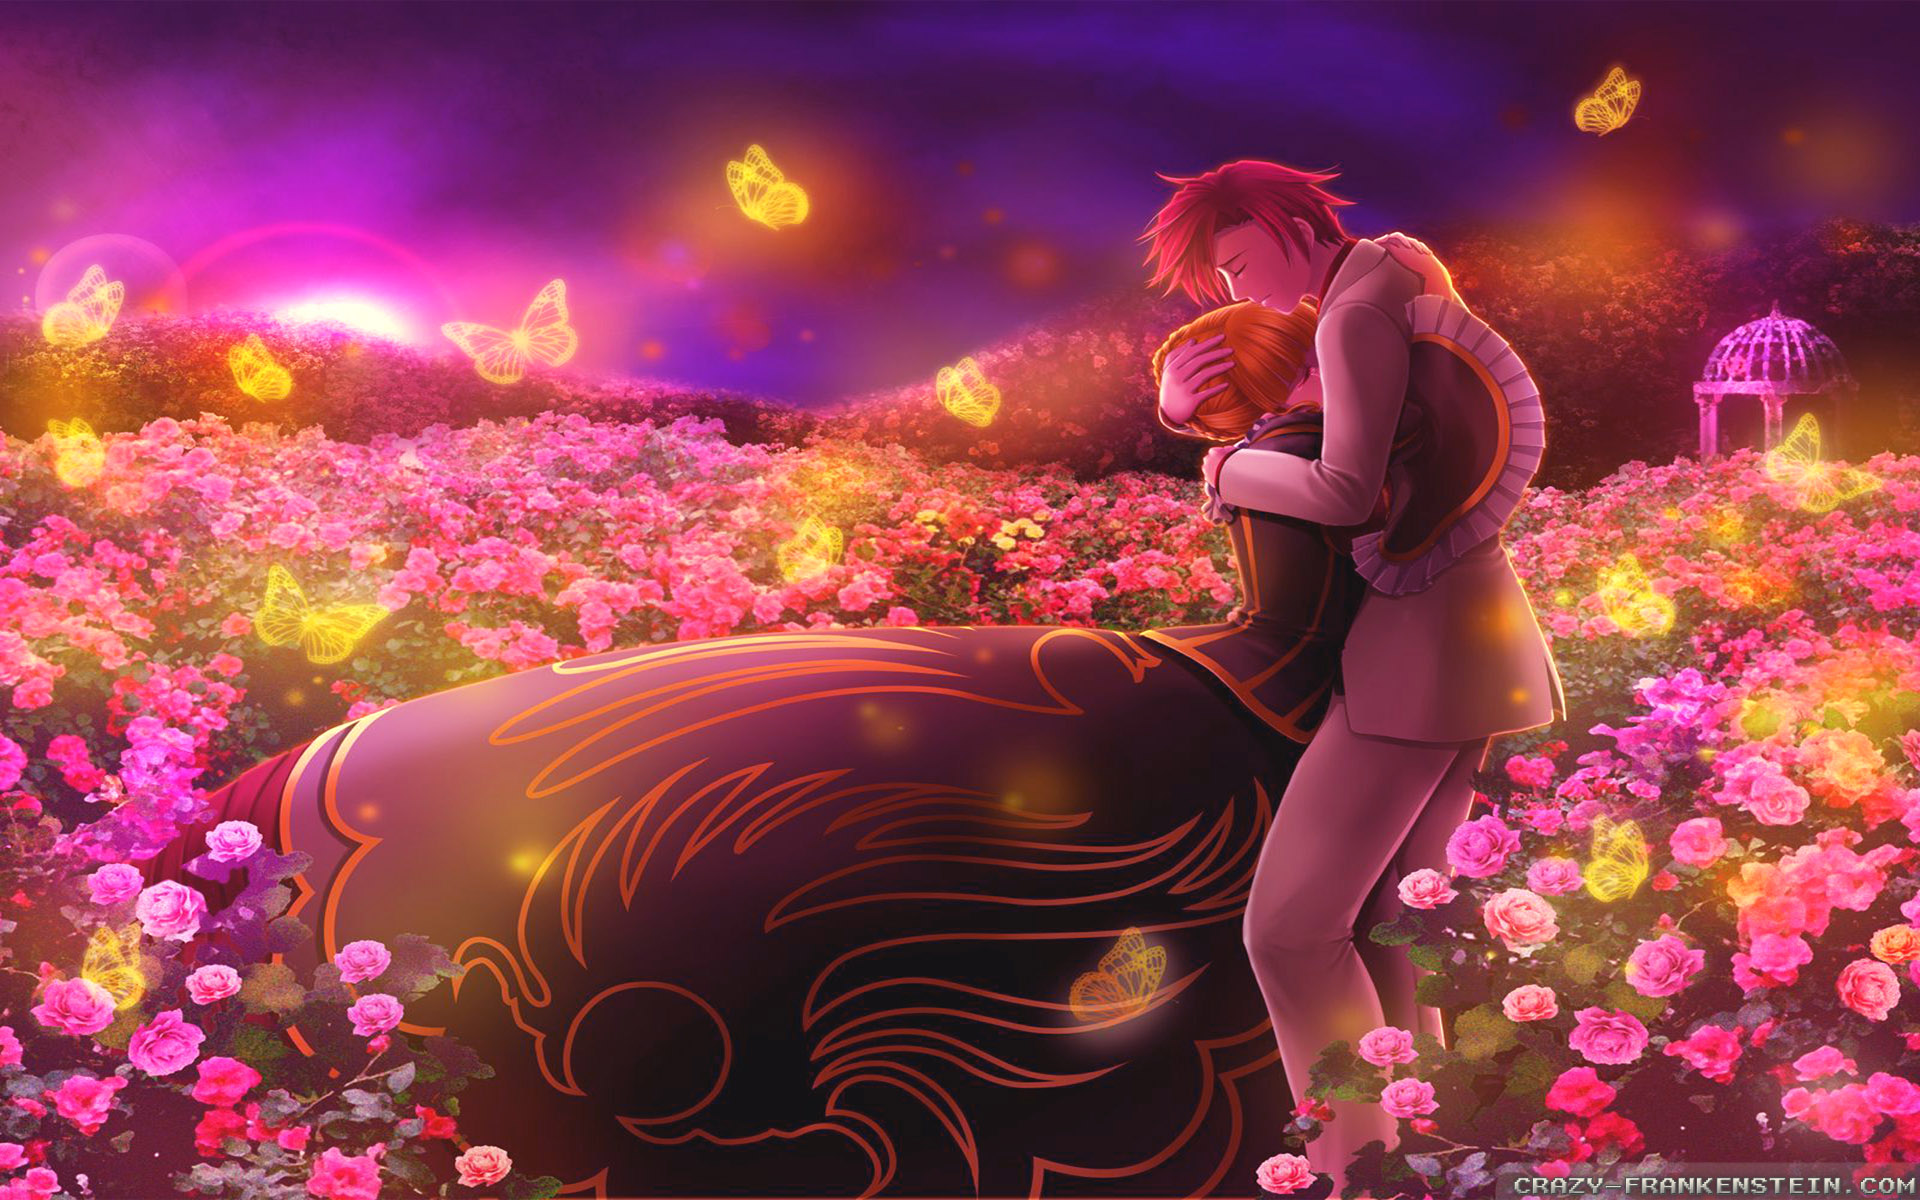 146 Love Couple Pic Images Wallpaper Pictures Hd 1080p: HD Wallpaper Love Couple 1920x1080